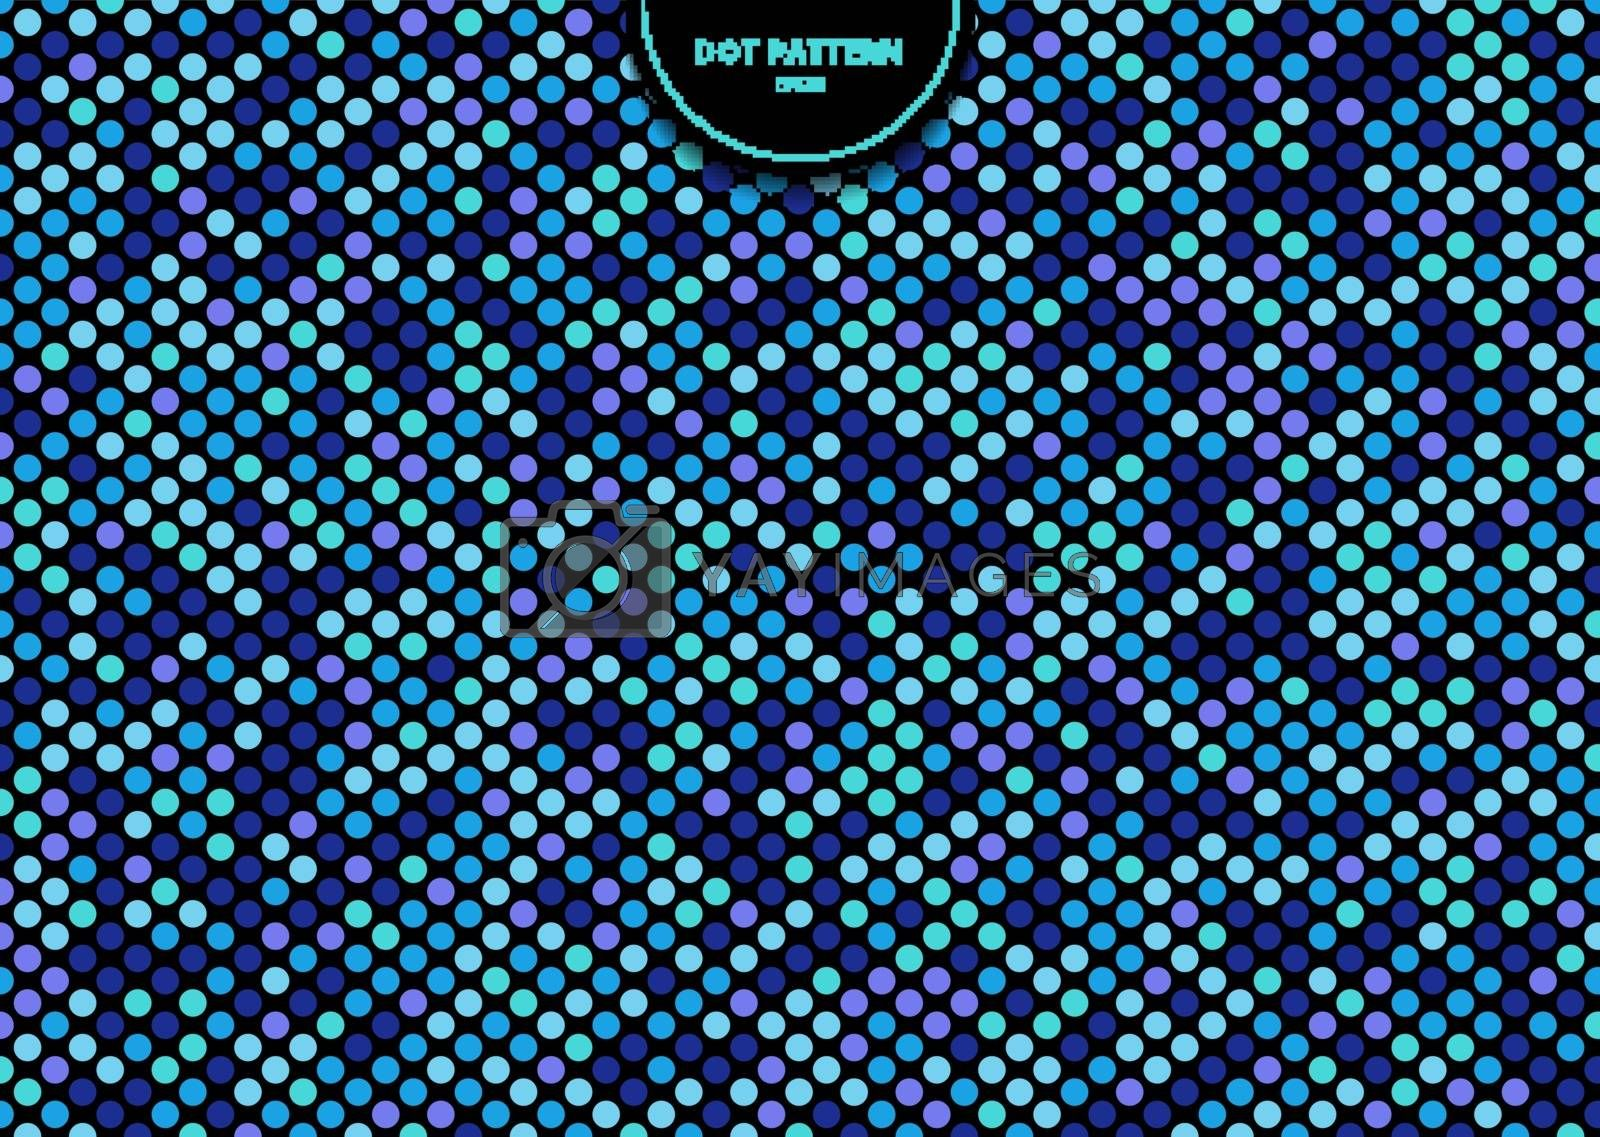 Abstract seamless dots pattern blue color on black background. Polka dot stripe graphic design. Vector illustration